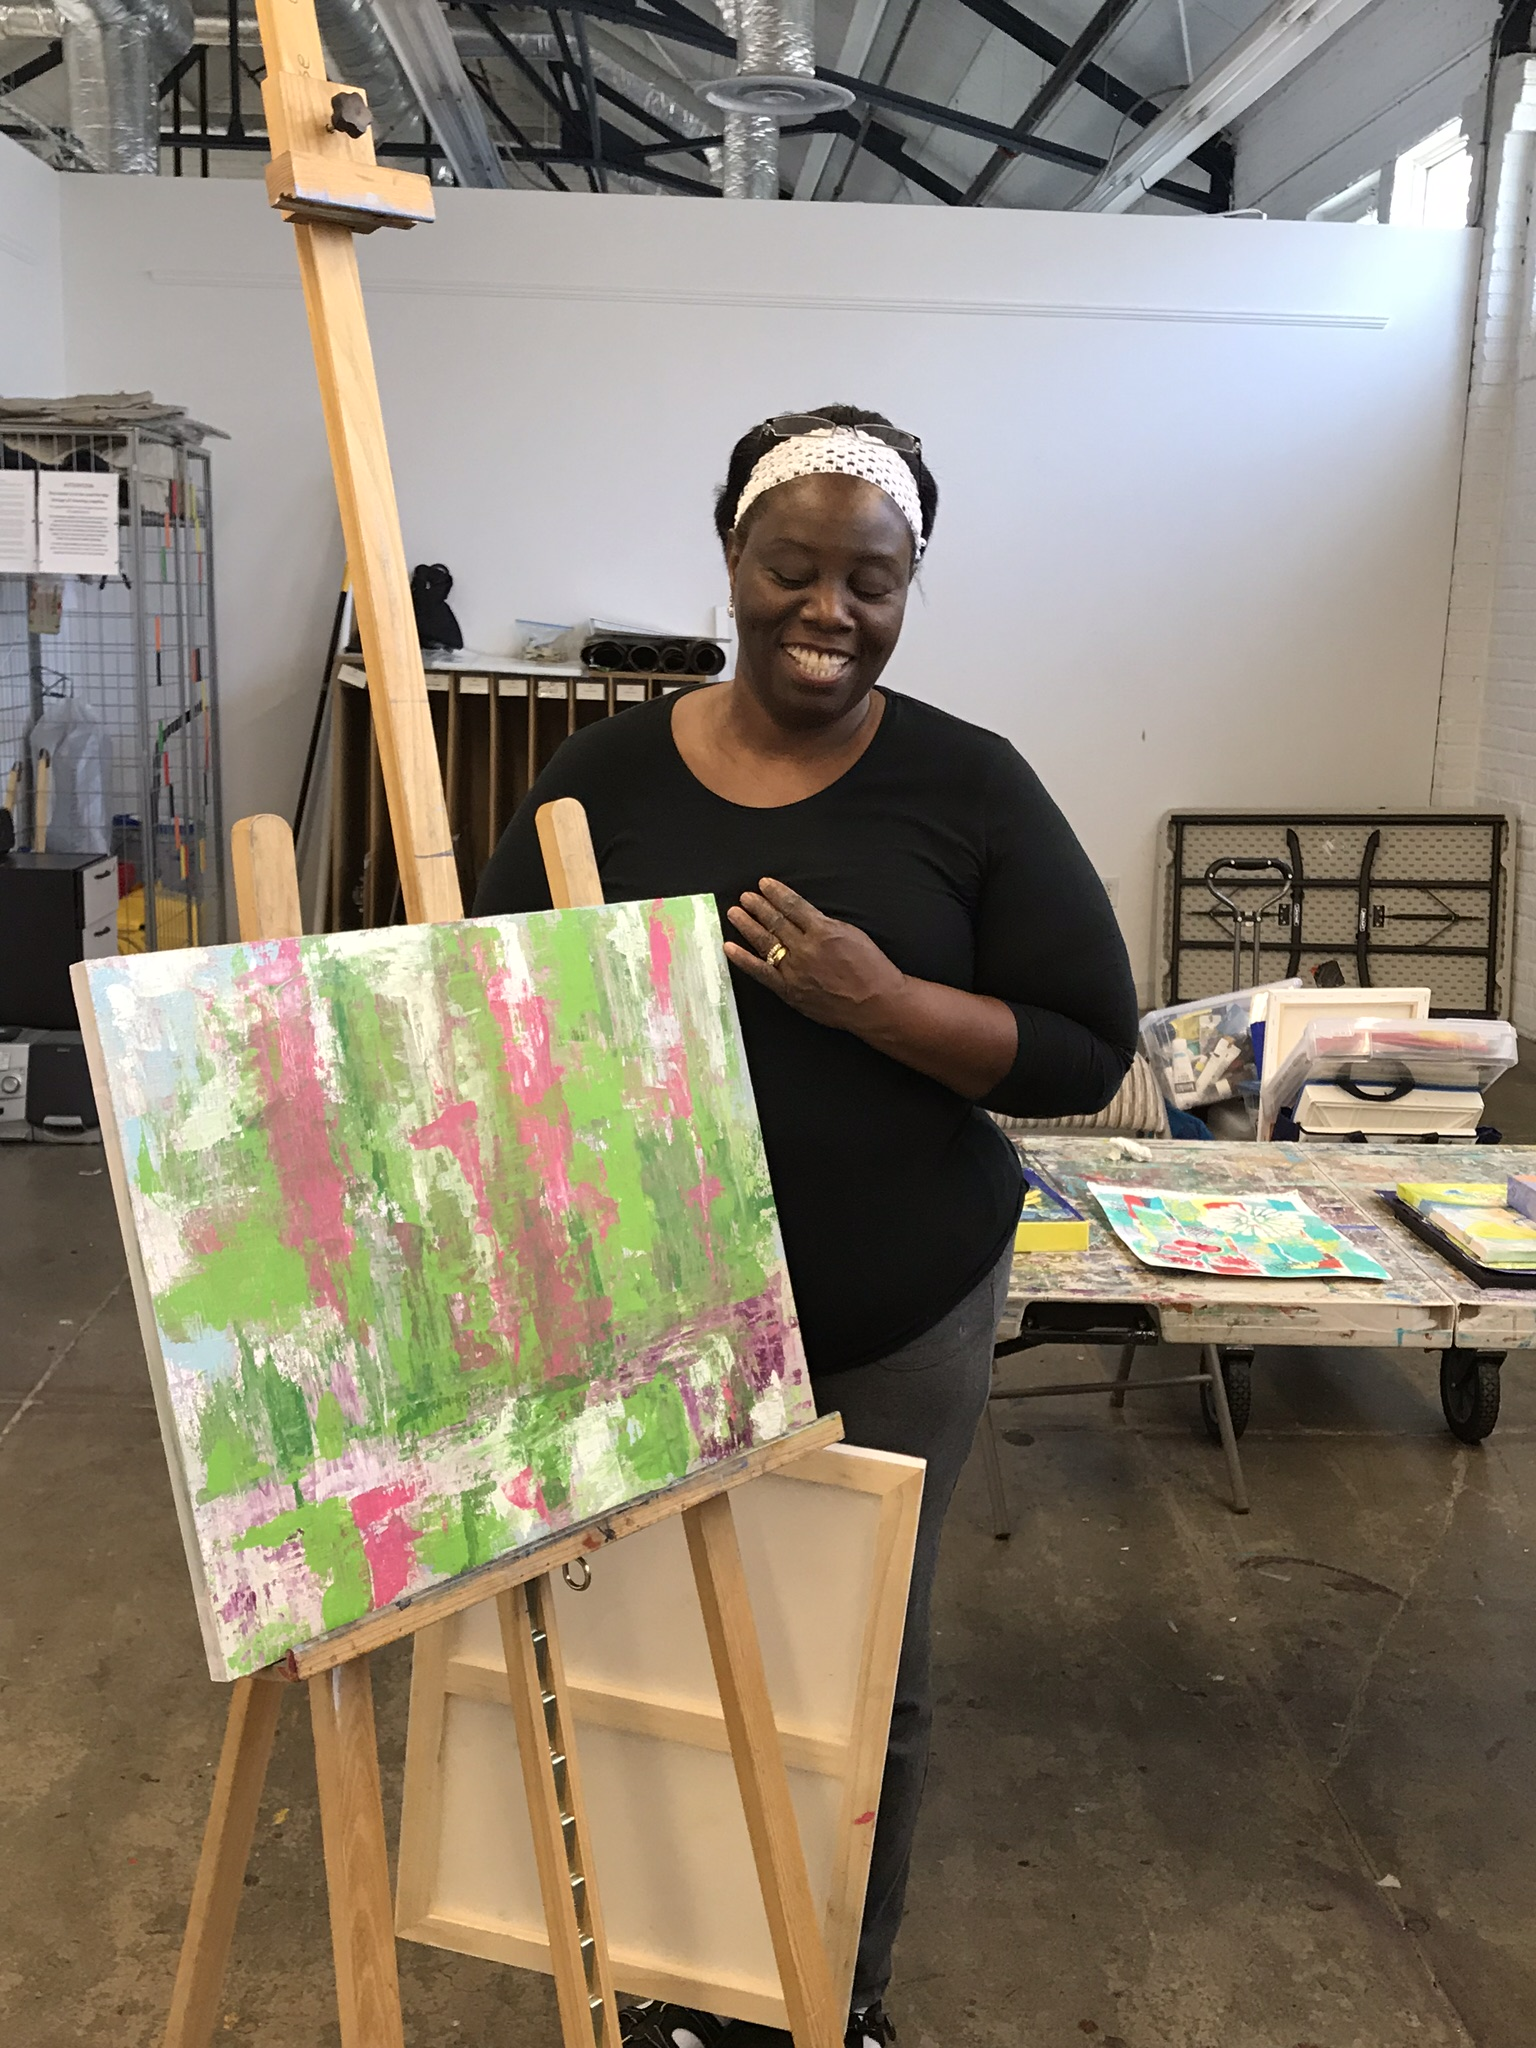 Shenell and abstract art